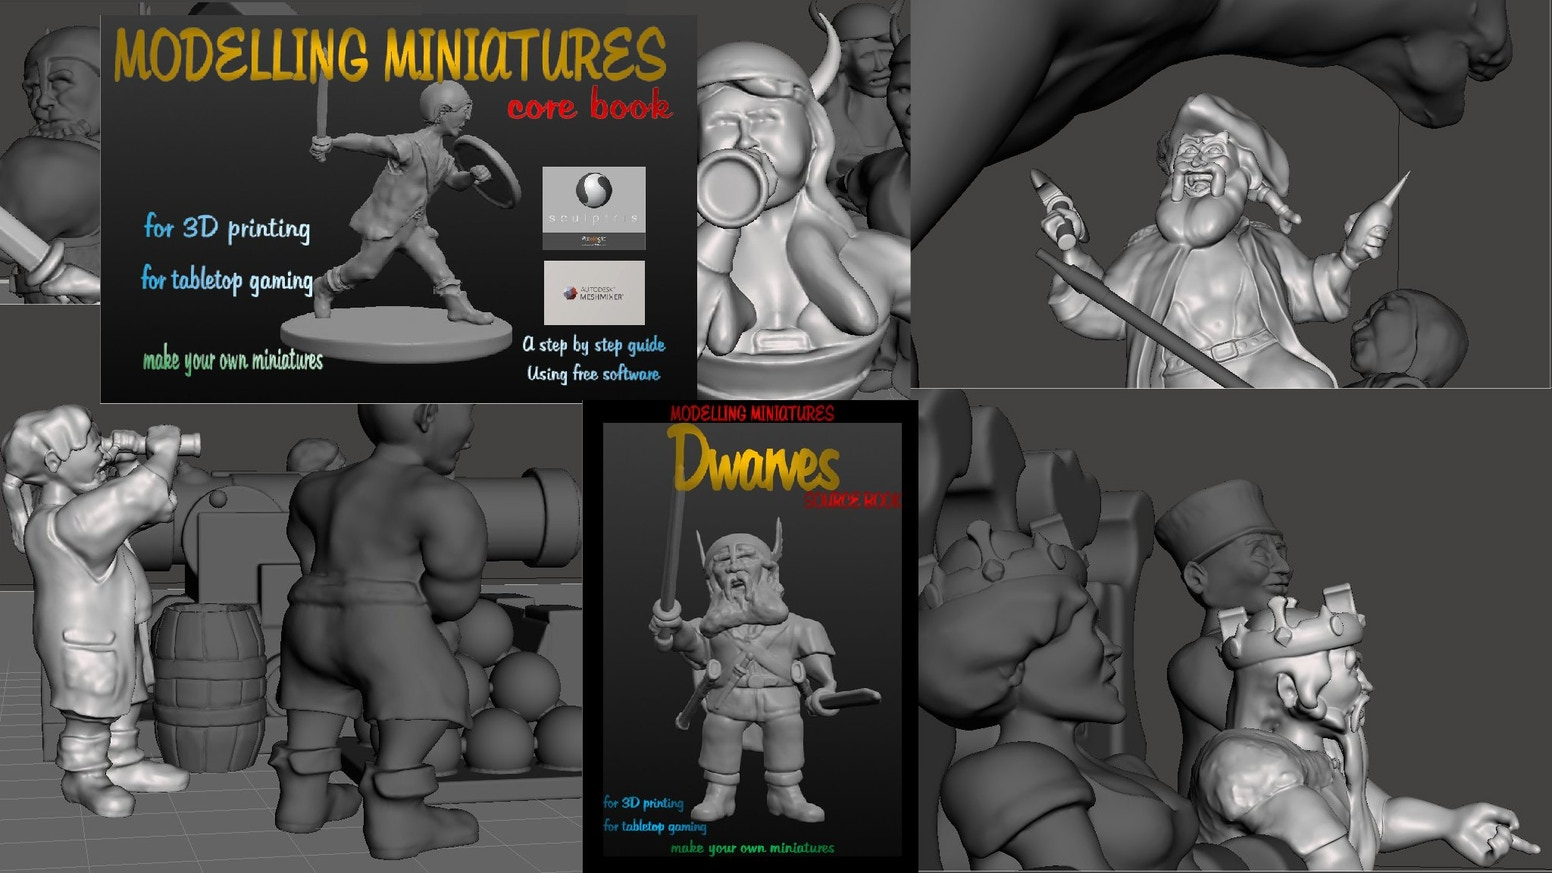 Make Your Own Miniatures - For 3D Printing - For Tabletop Games - Includes STL & OBJ Model Files To Print Or Edit & 6 Dwarf Model Sets